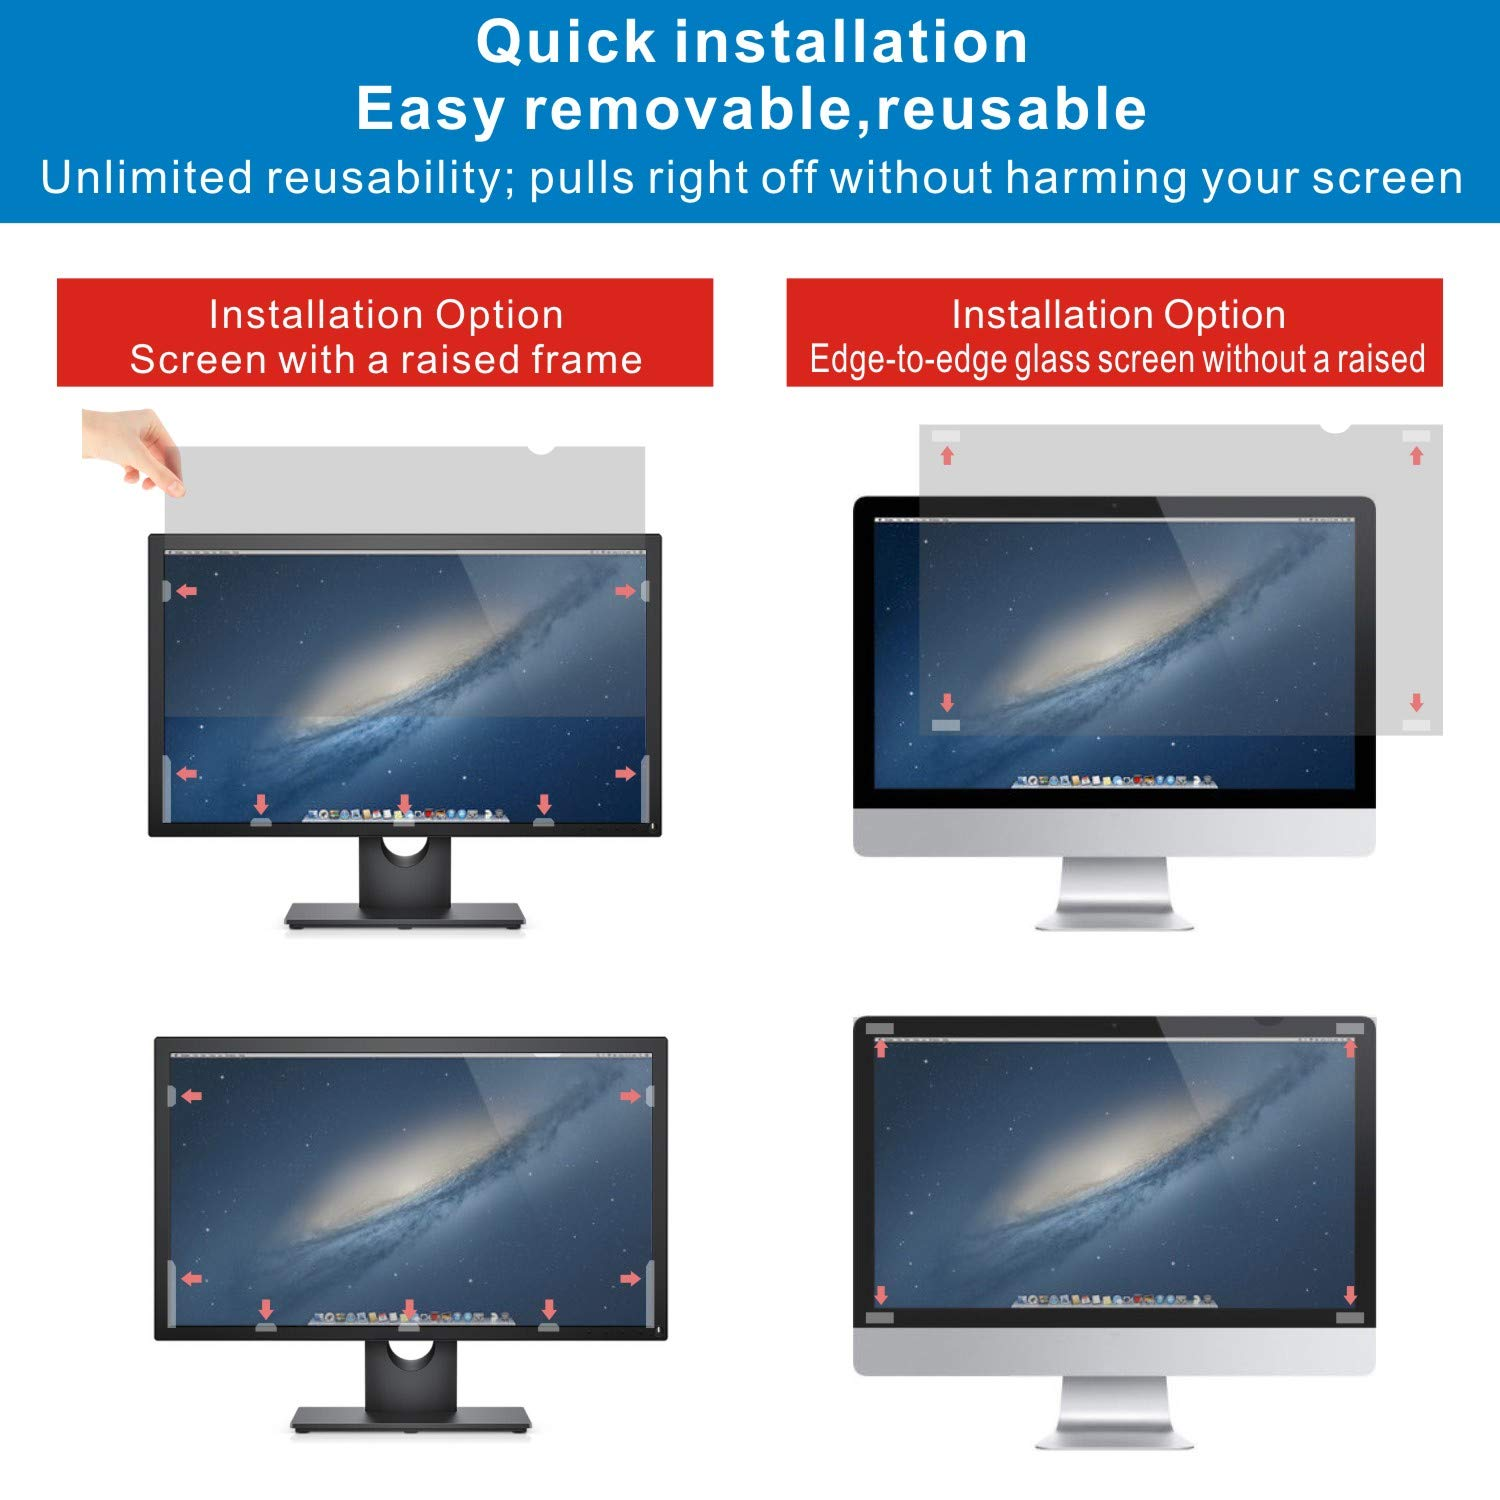 Accgonon Computer Privacy Screen Filters for 25-inch Widescreen(16:9) Monitor Privacy Screen Protector,Anti-Glare Anti-Spy Anti-Blue Scratch and UV Protection,Easy Install by ACCGONON (Image #4)